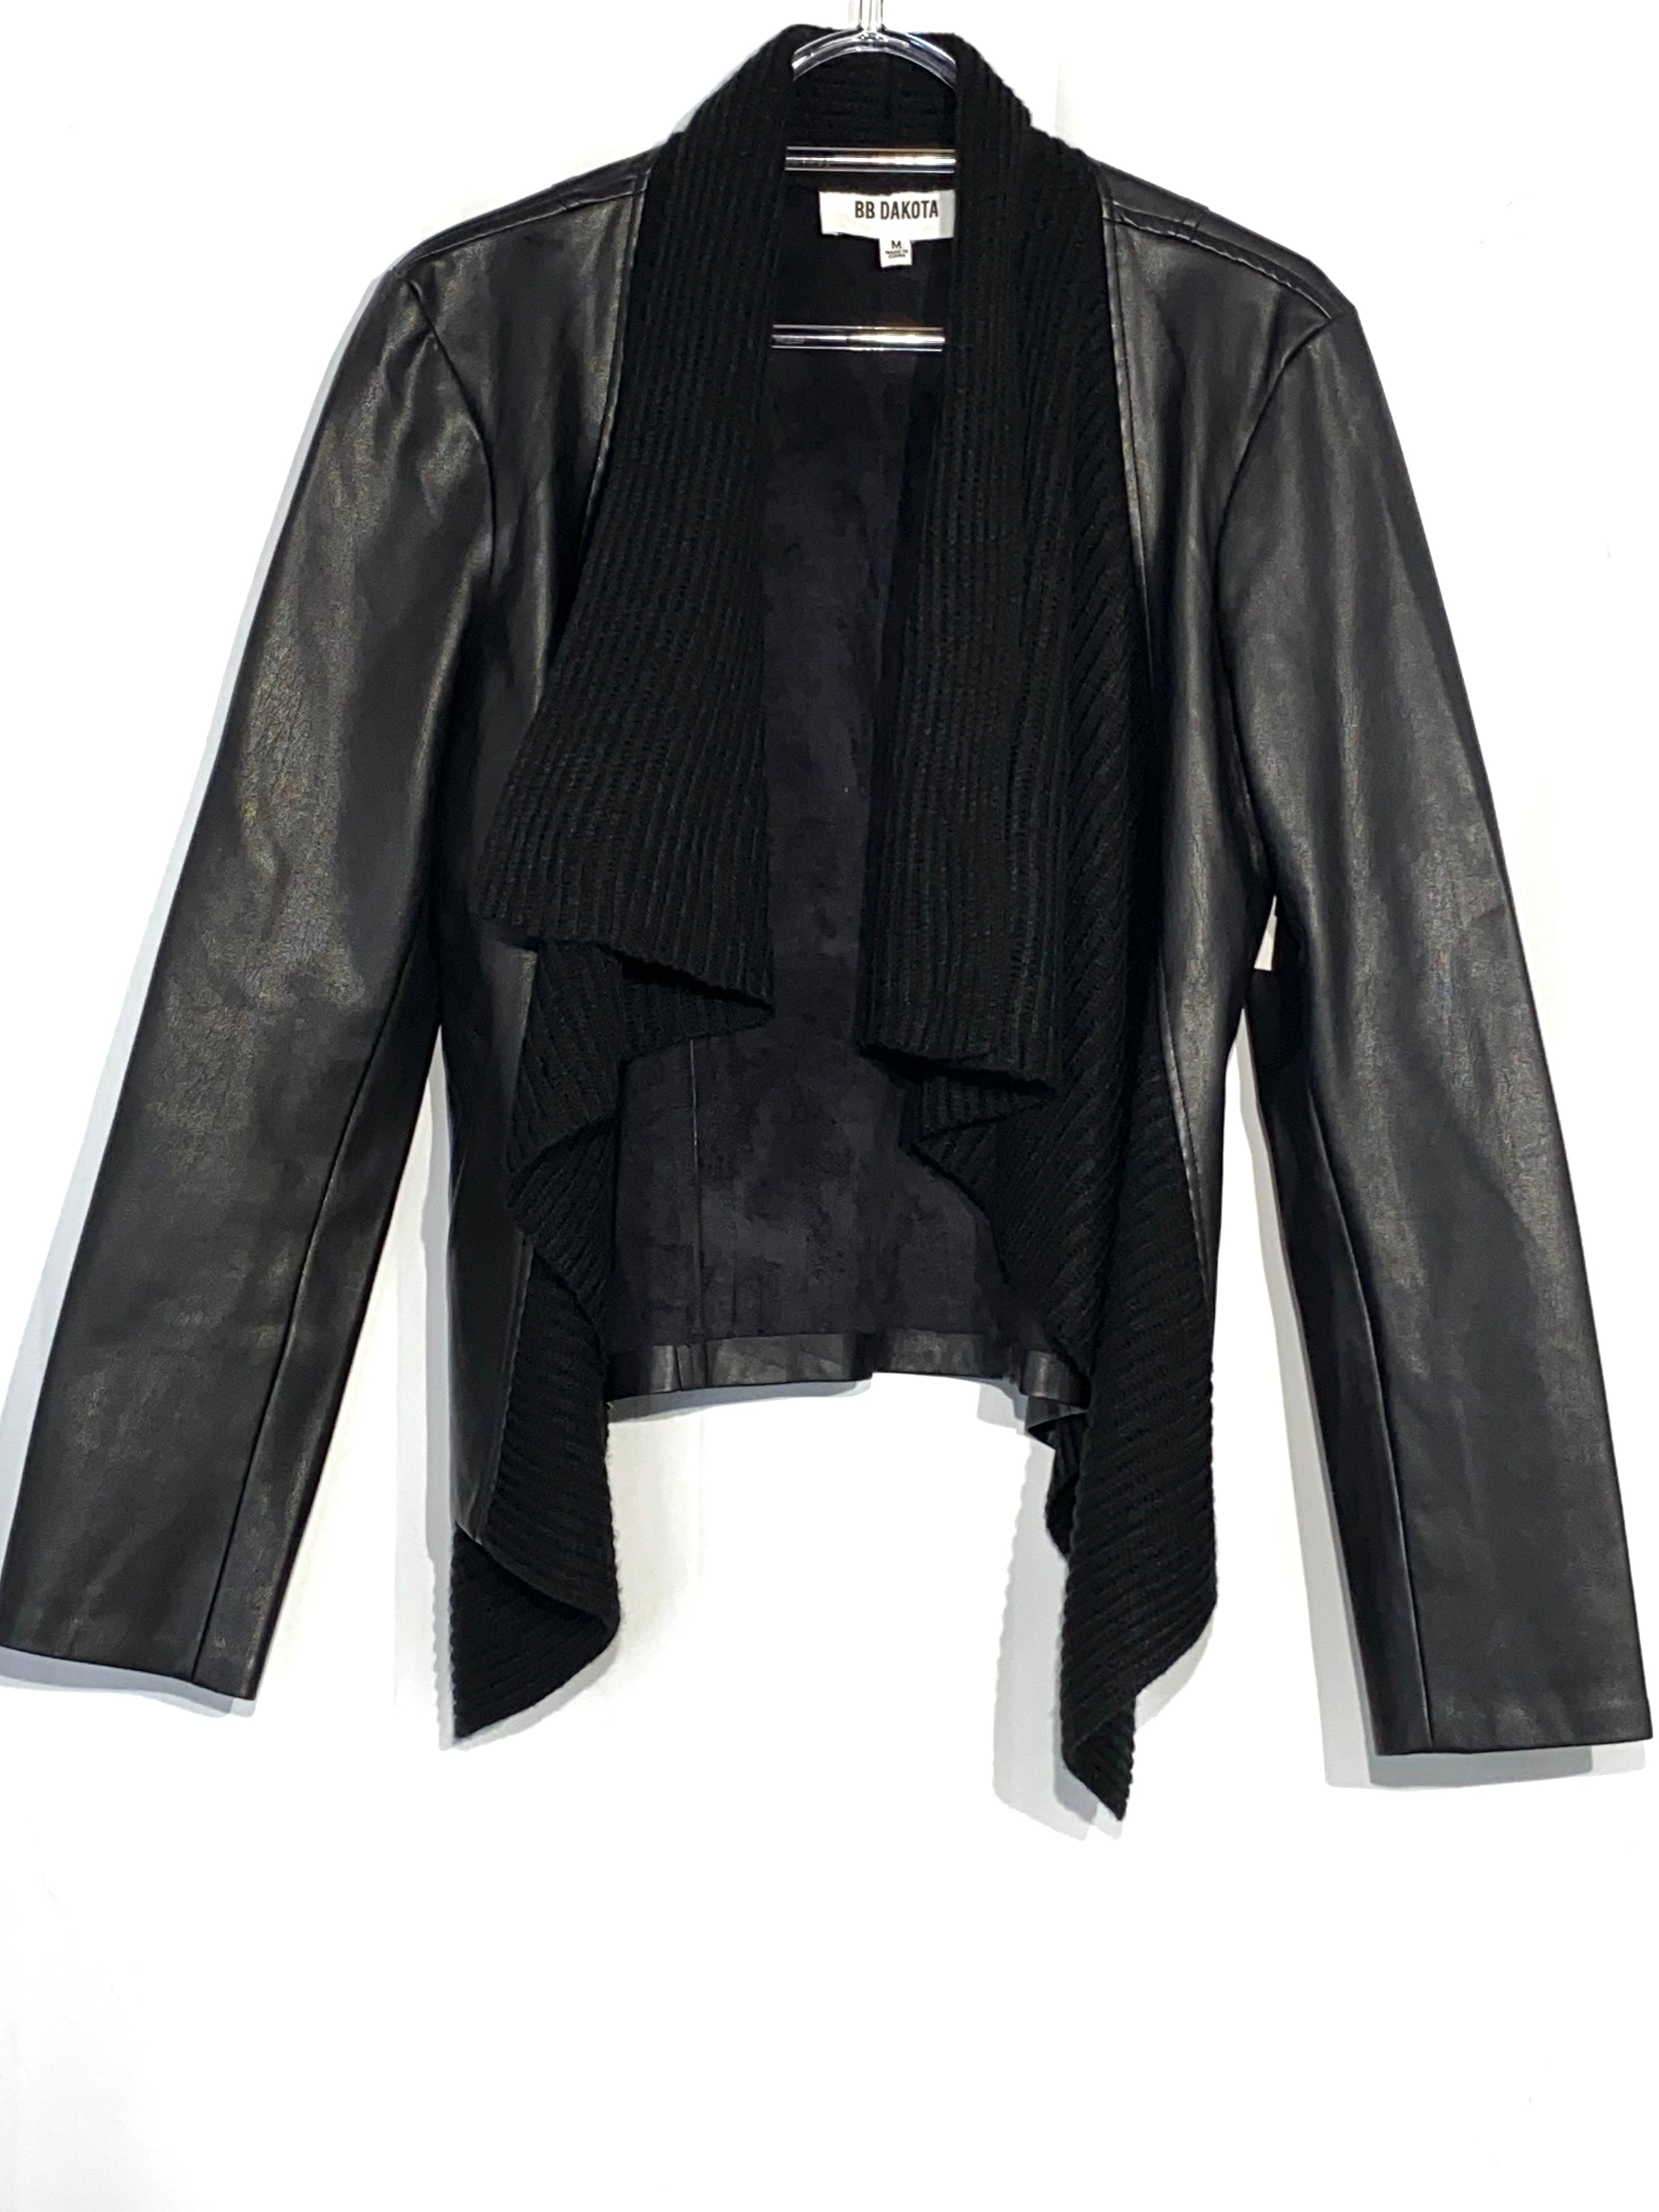 Primary Photo - BRAND: BB DAKOTA <BR>STYLE: JACKET OUTDOOR <BR>COLOR: BLACK <BR>SIZE: M <BR>SKU: 262-26241-42178<BR>LEATHER LOOK